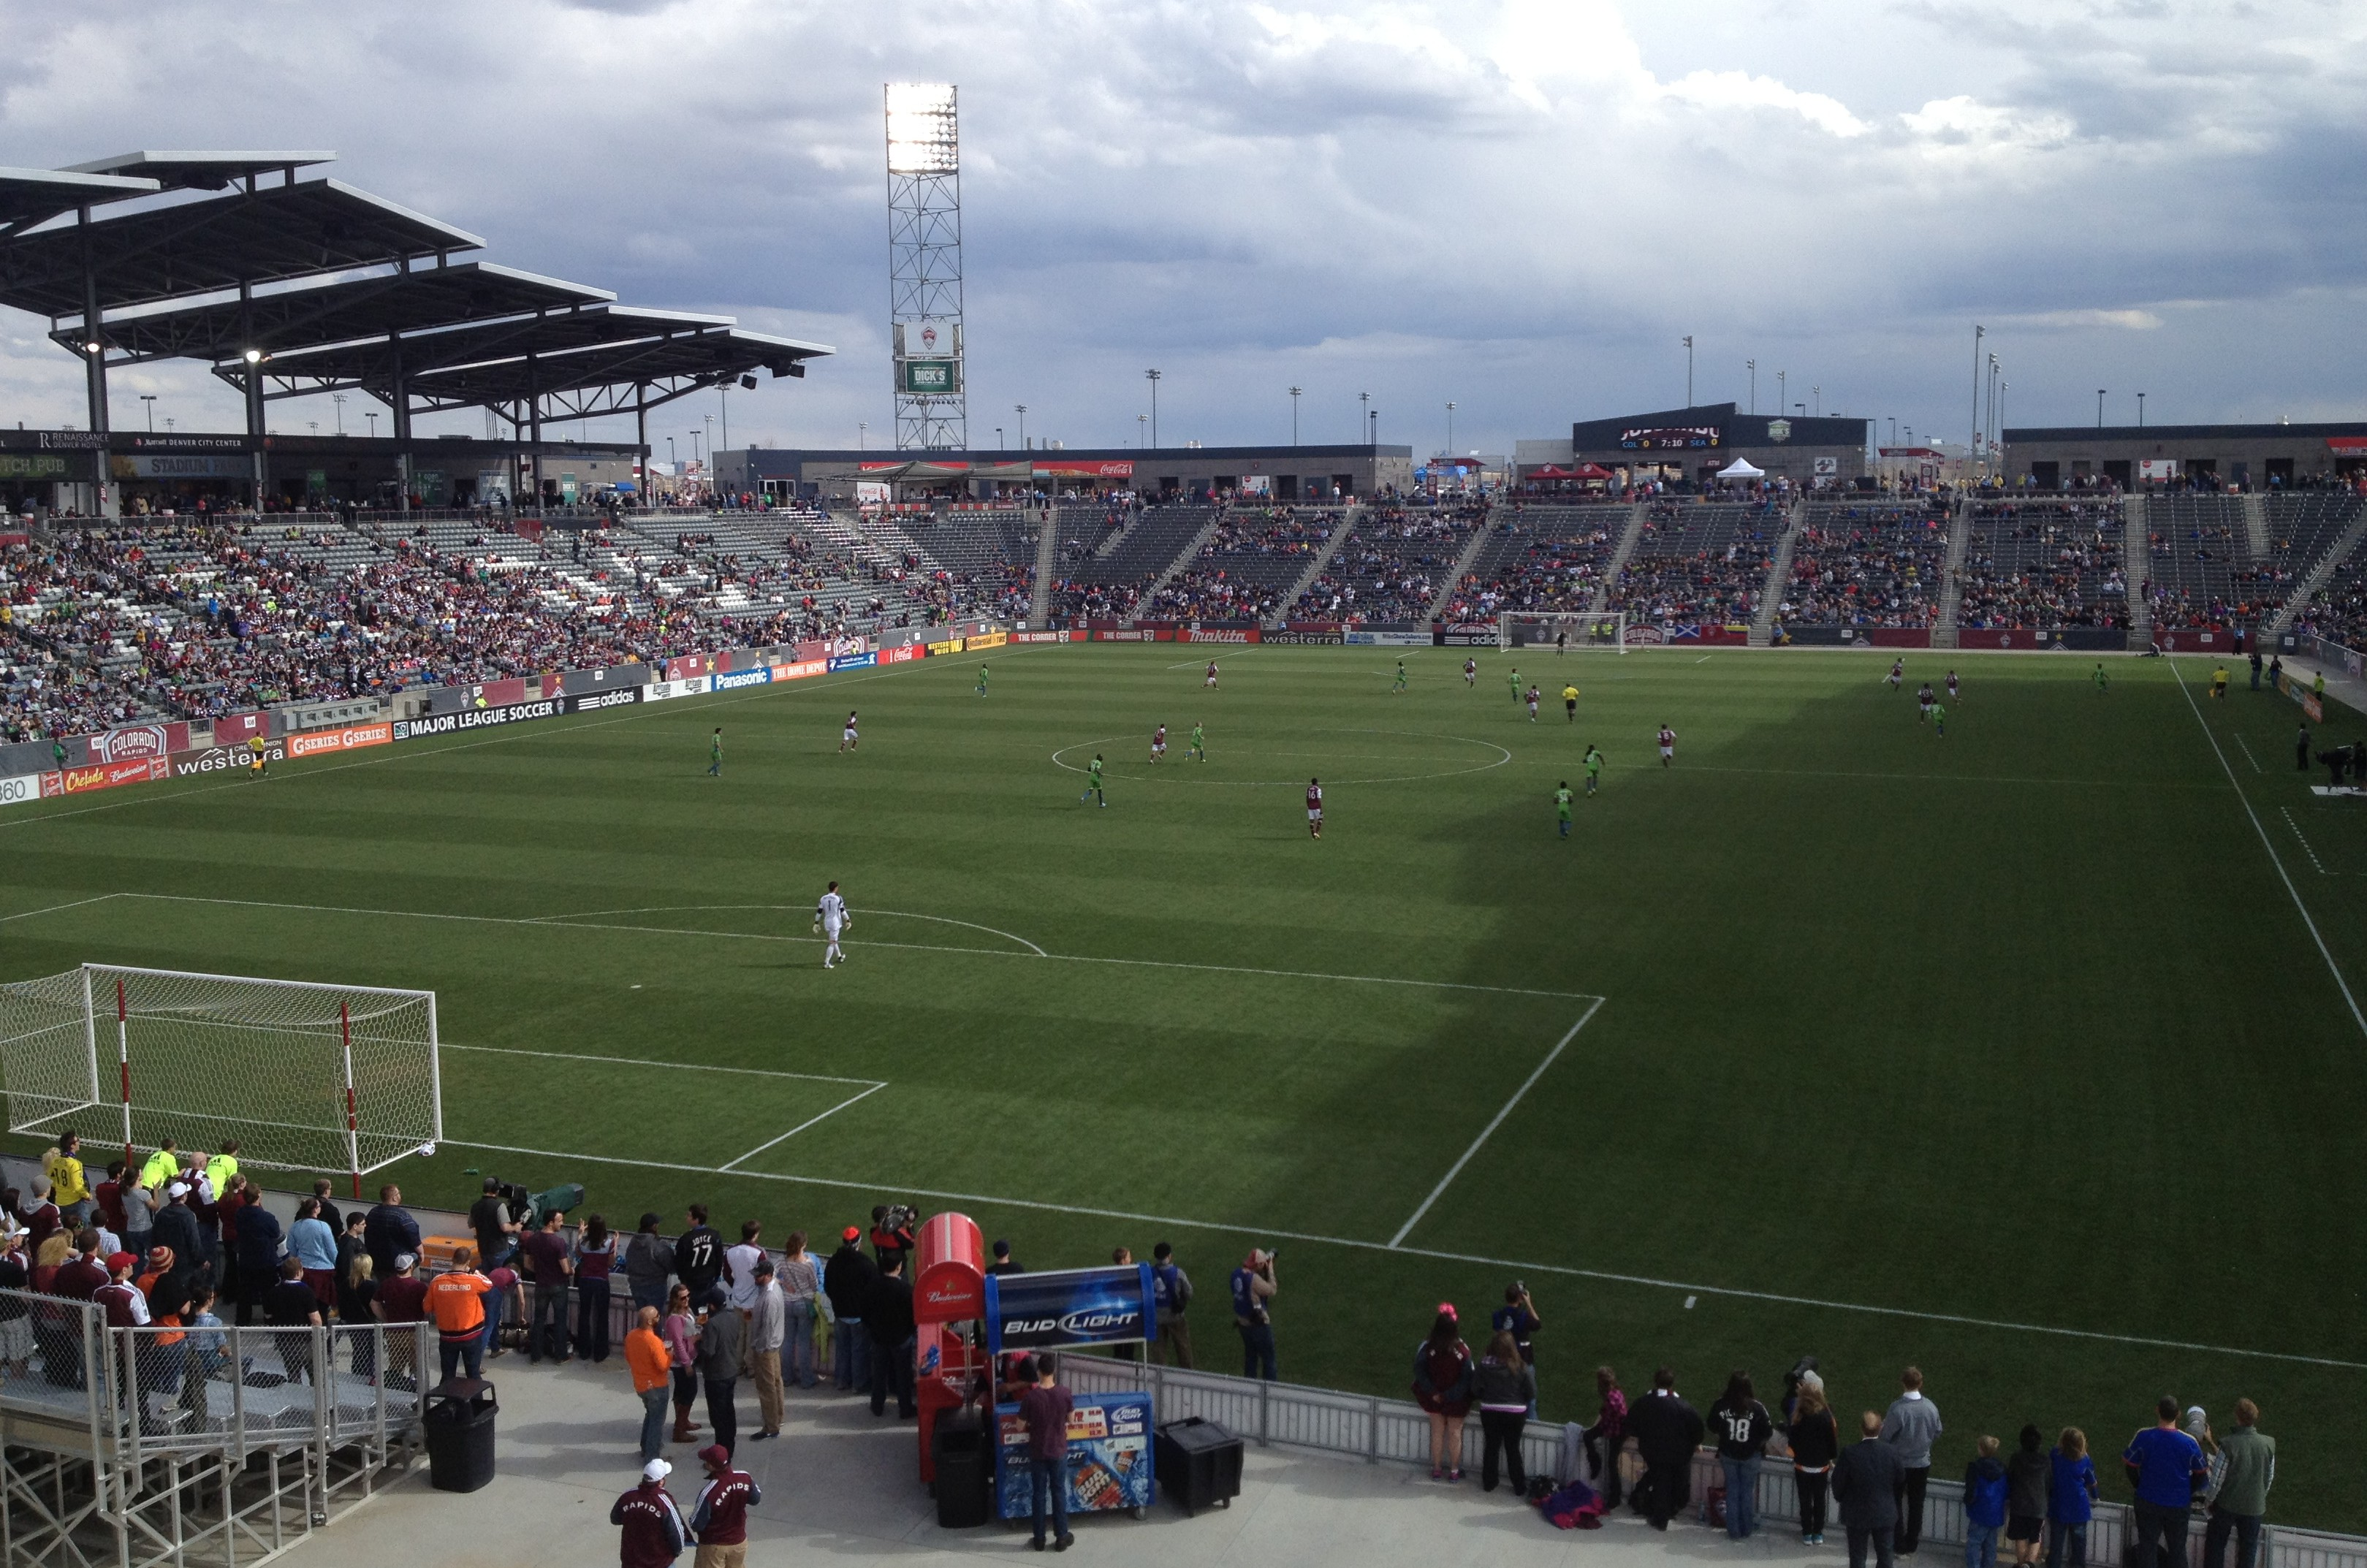 The Rapids announced a crowd of 12,063, many of whom apparently were at the concessions stands at Dick's Sporting Goods Park. / Andy Boyer photo